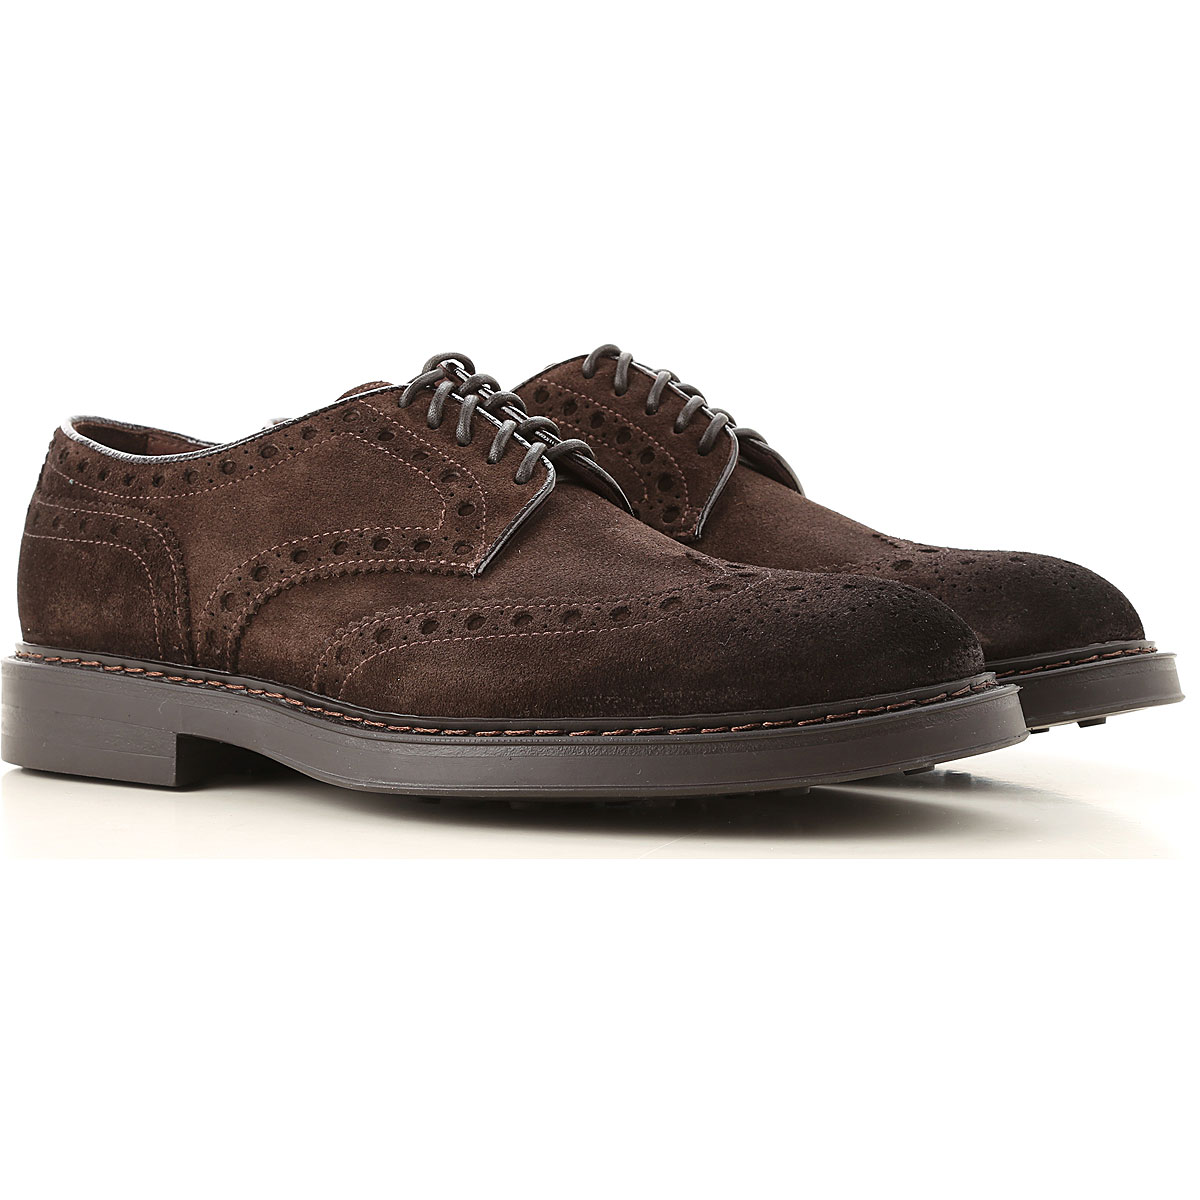 Doucals Lace Up Shoes for Men Oxfords, Derbies and Brogues On Sale, Dark Brown, Suede leather, 2019, 10 10.5 6.5 7.5 7.75 8.5